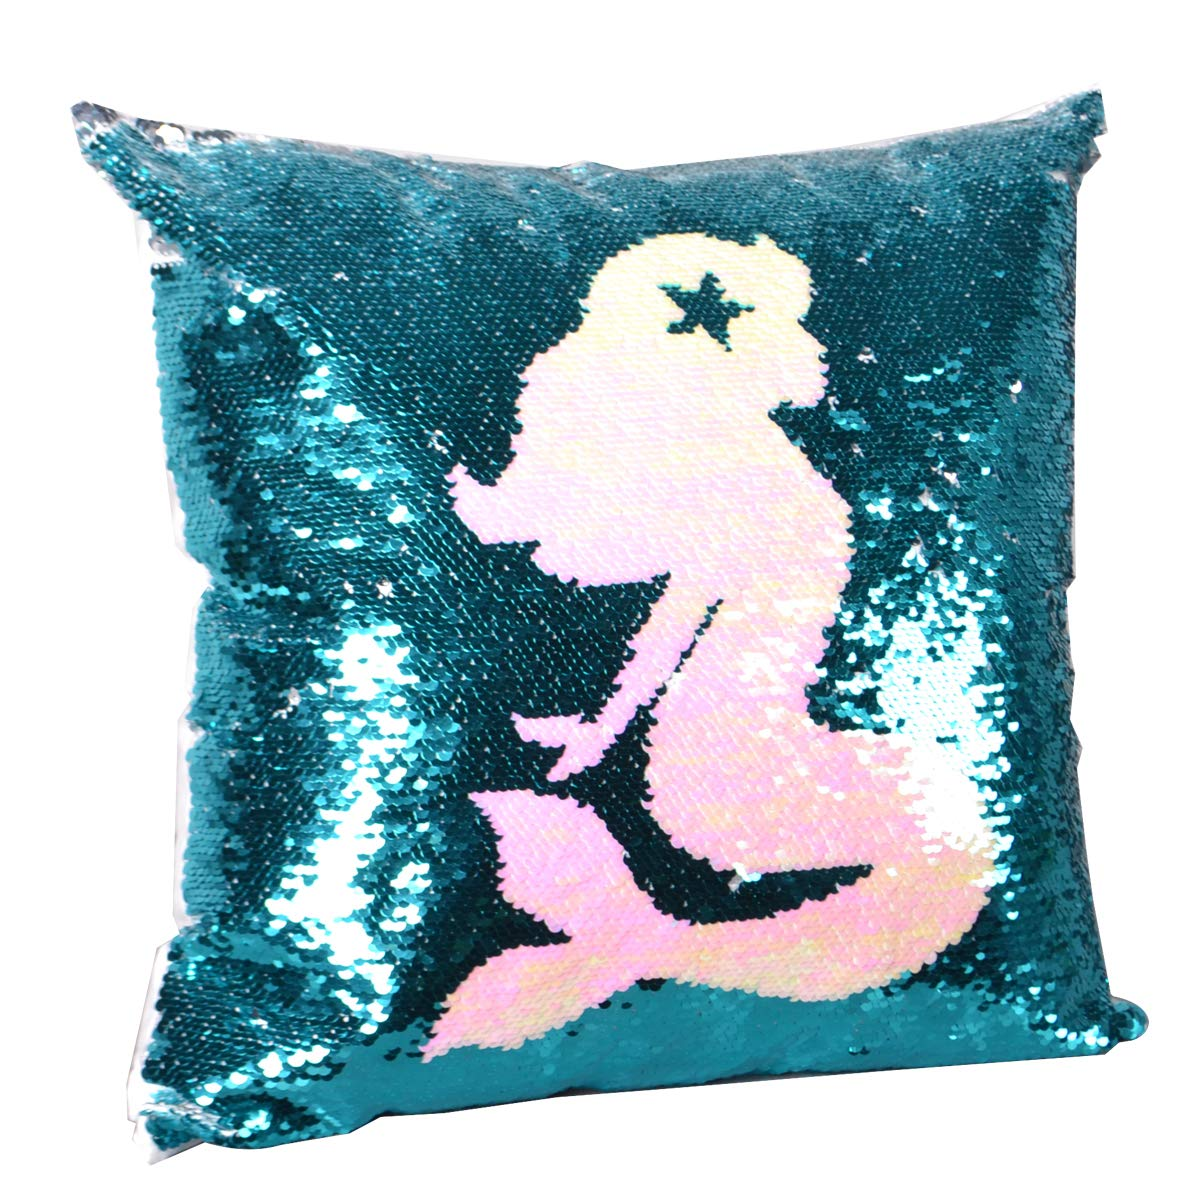 Leegleri Mermaid Sequins Pillow Case, Reversible Sequin Throw Pillow Cover with Zip,Magic Mermaid Gift Cushion Cover for Couch Bed Sofa